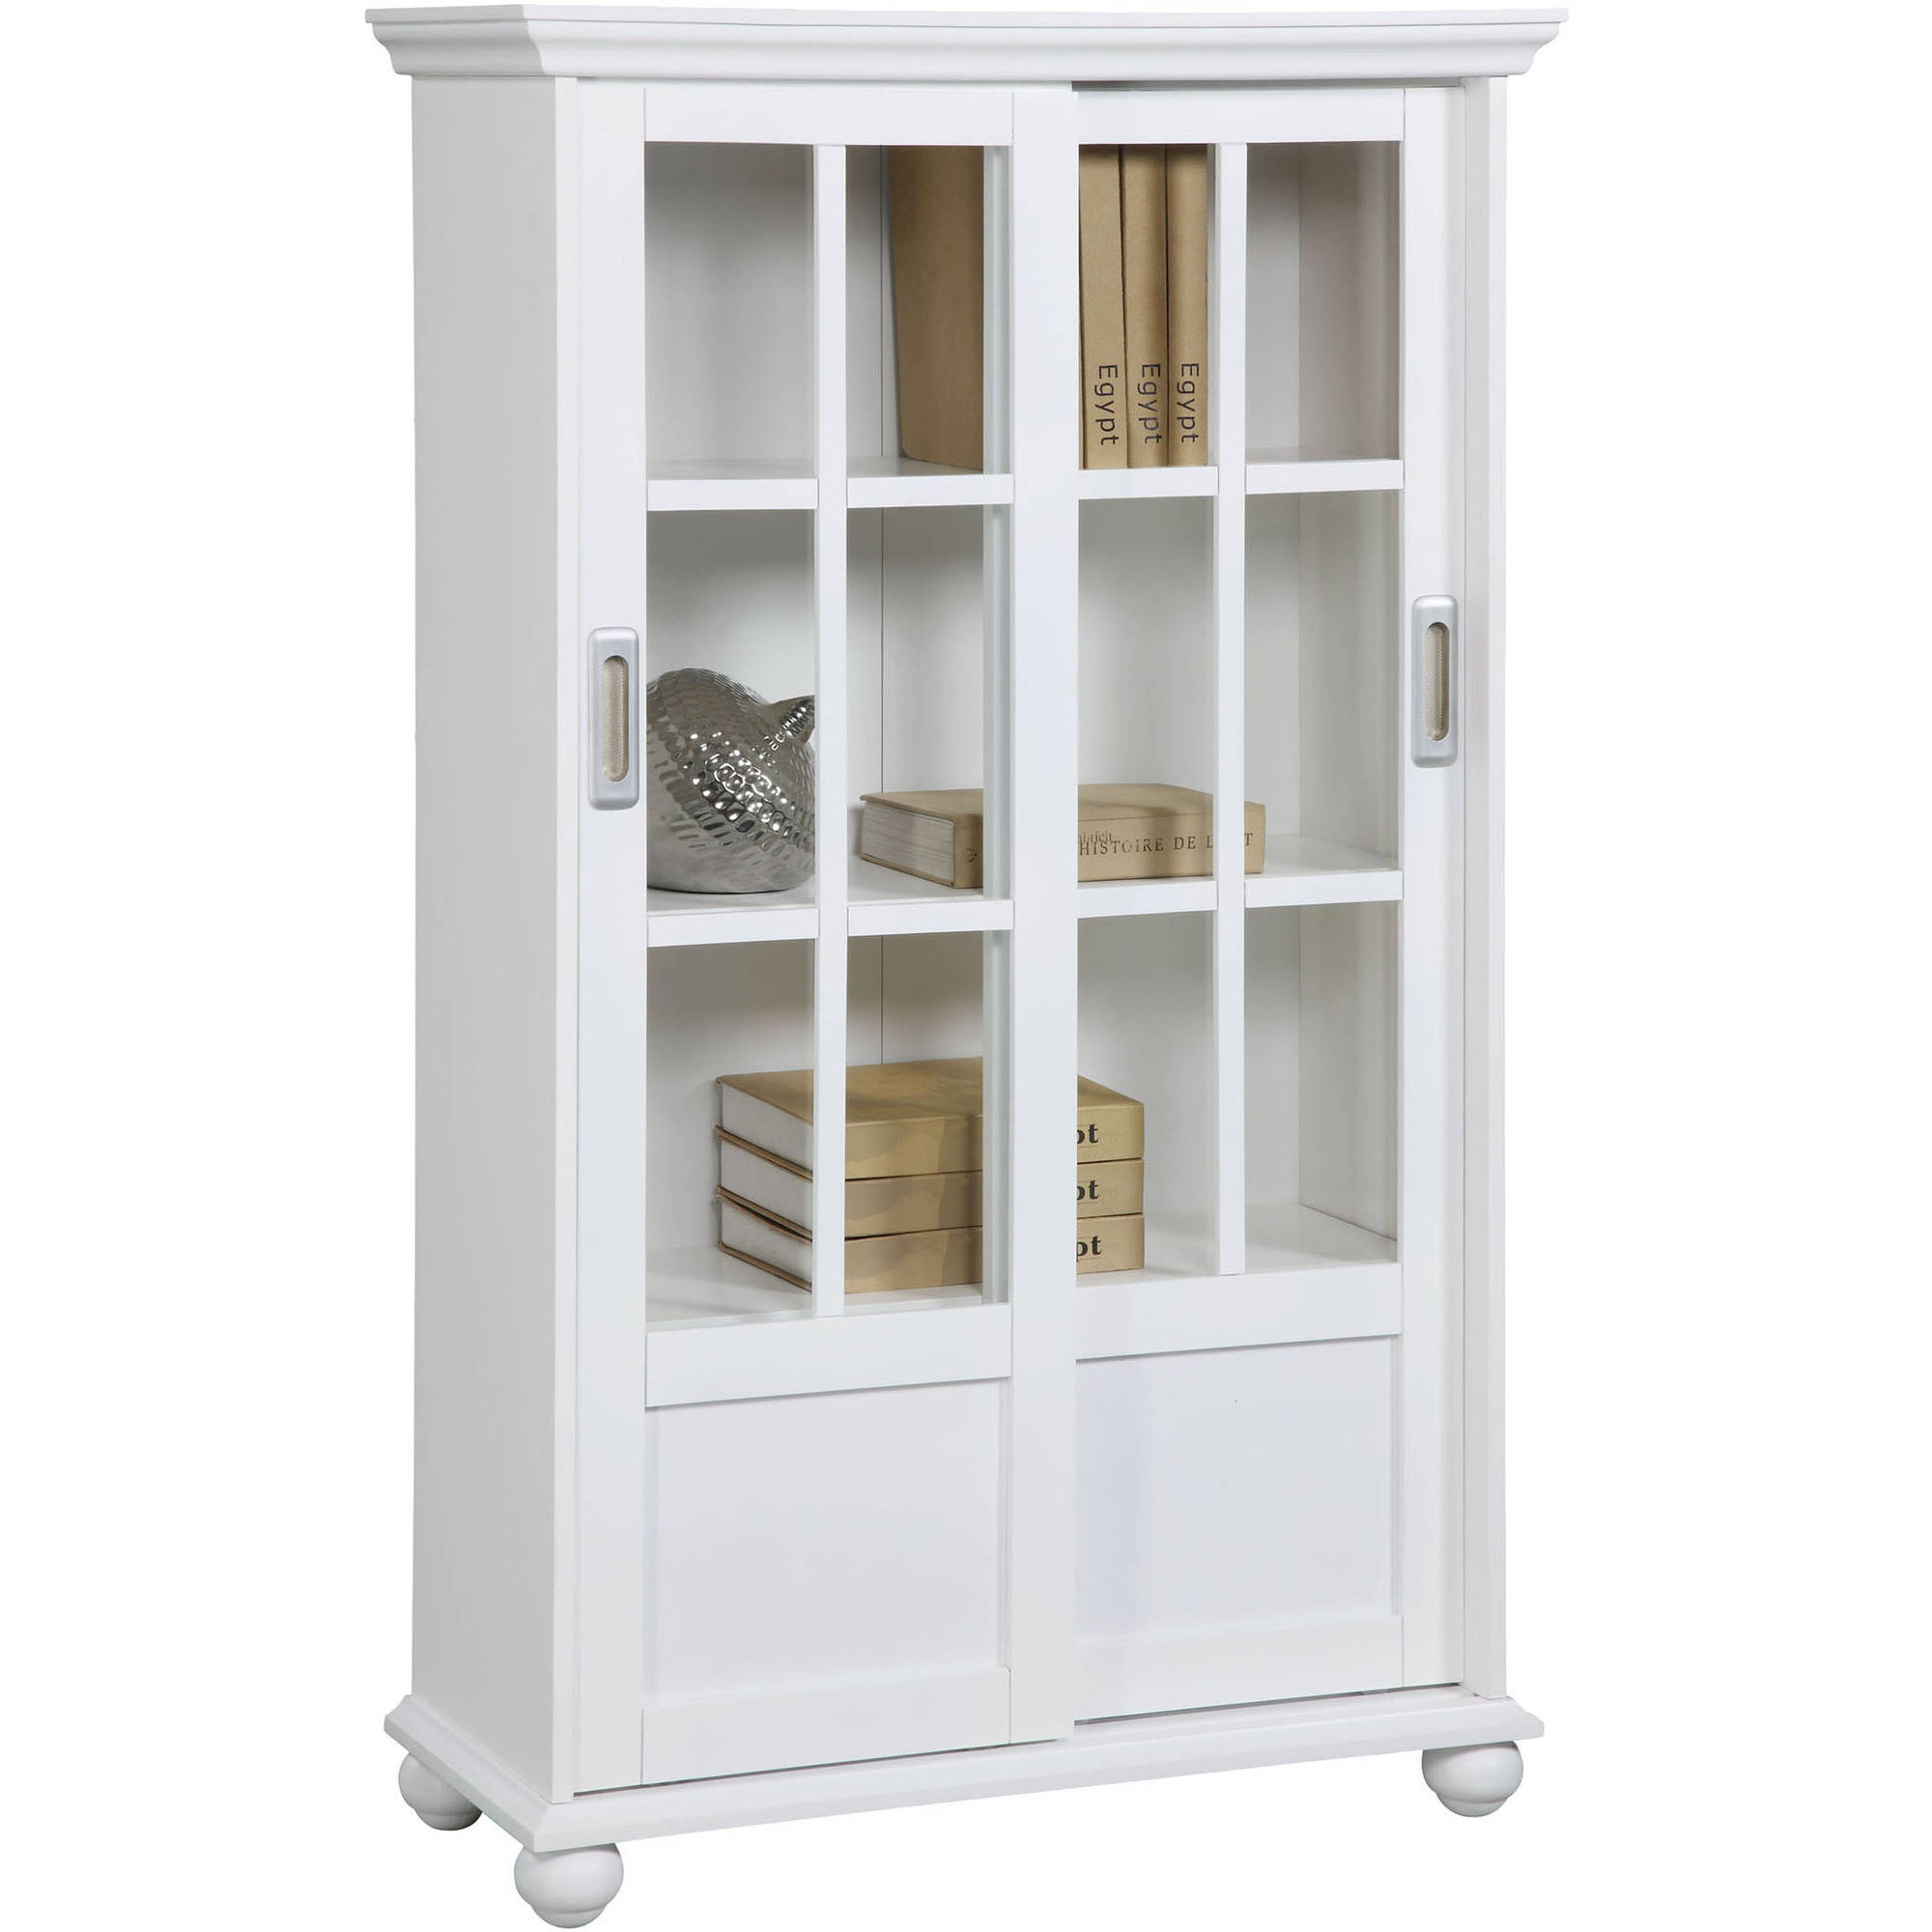 bookcases with glass doors altra aaron lane bookcase with sliding glass doors, white - walmart.com NVPDZIF